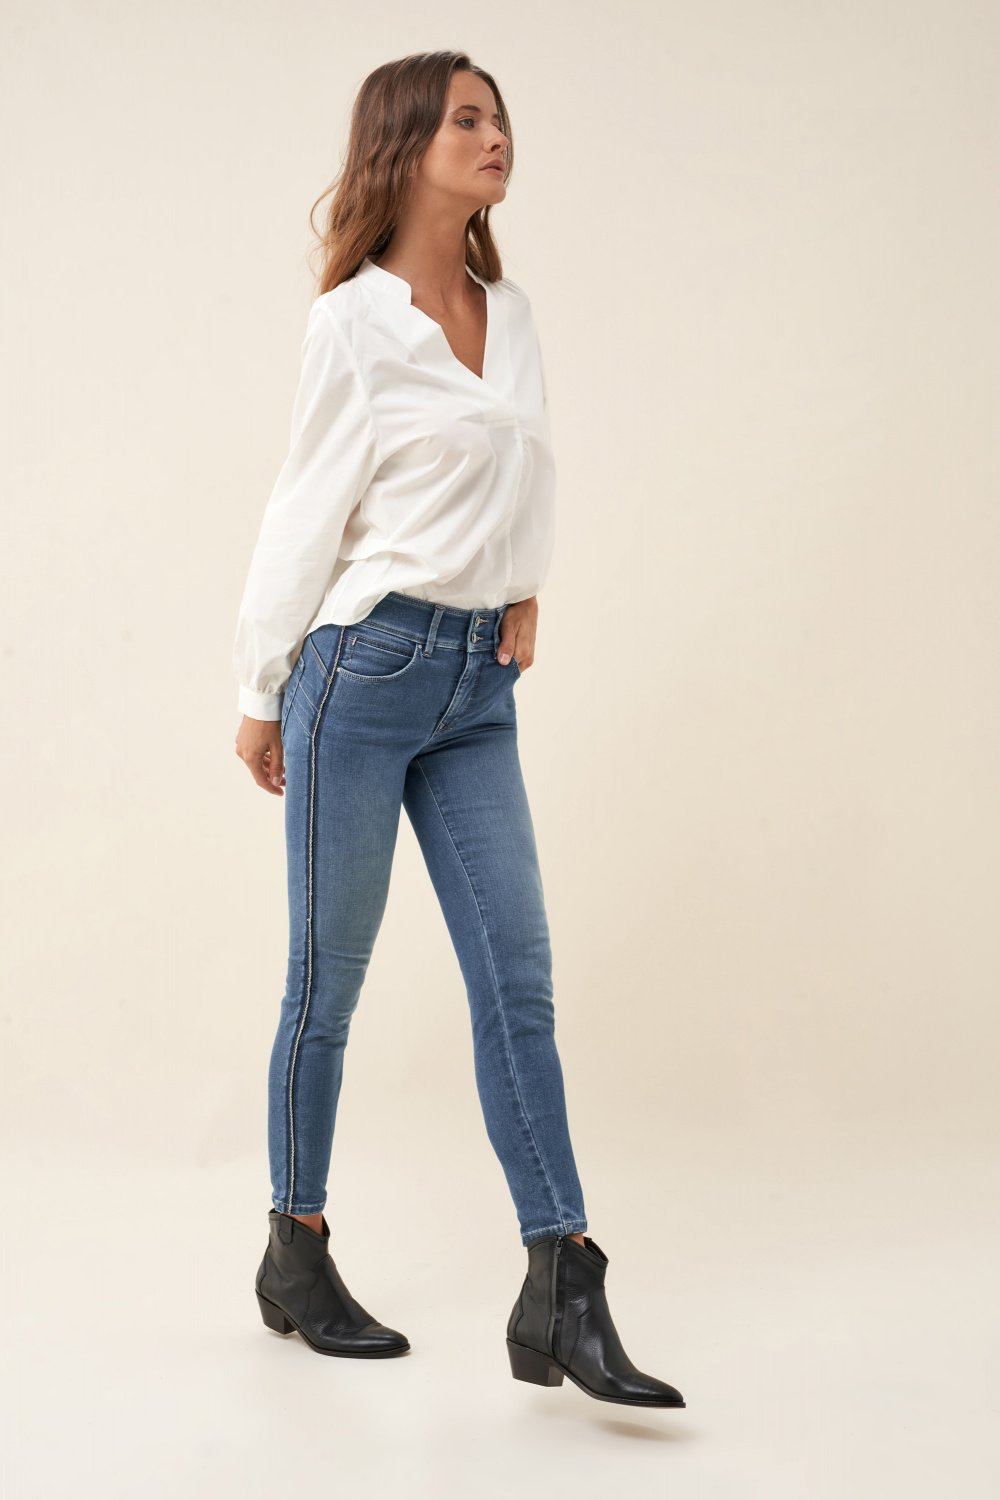 Push In Secret capri jeans with side detail - Salsa